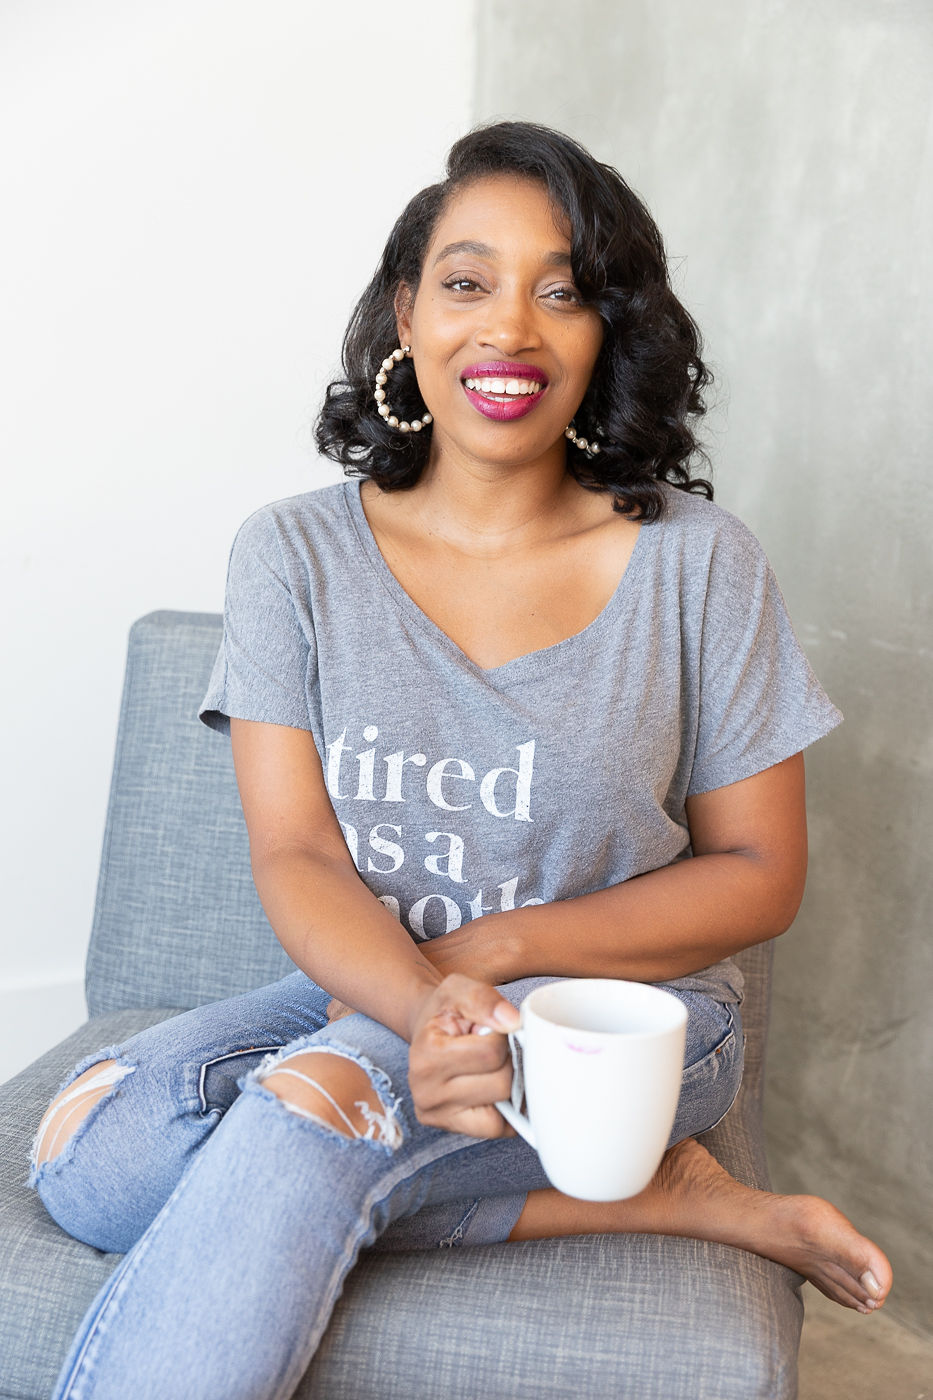 Andrea Fenise Memphis Fashion Blogger and Memphis Influencer shares self care tips for postpartum moms